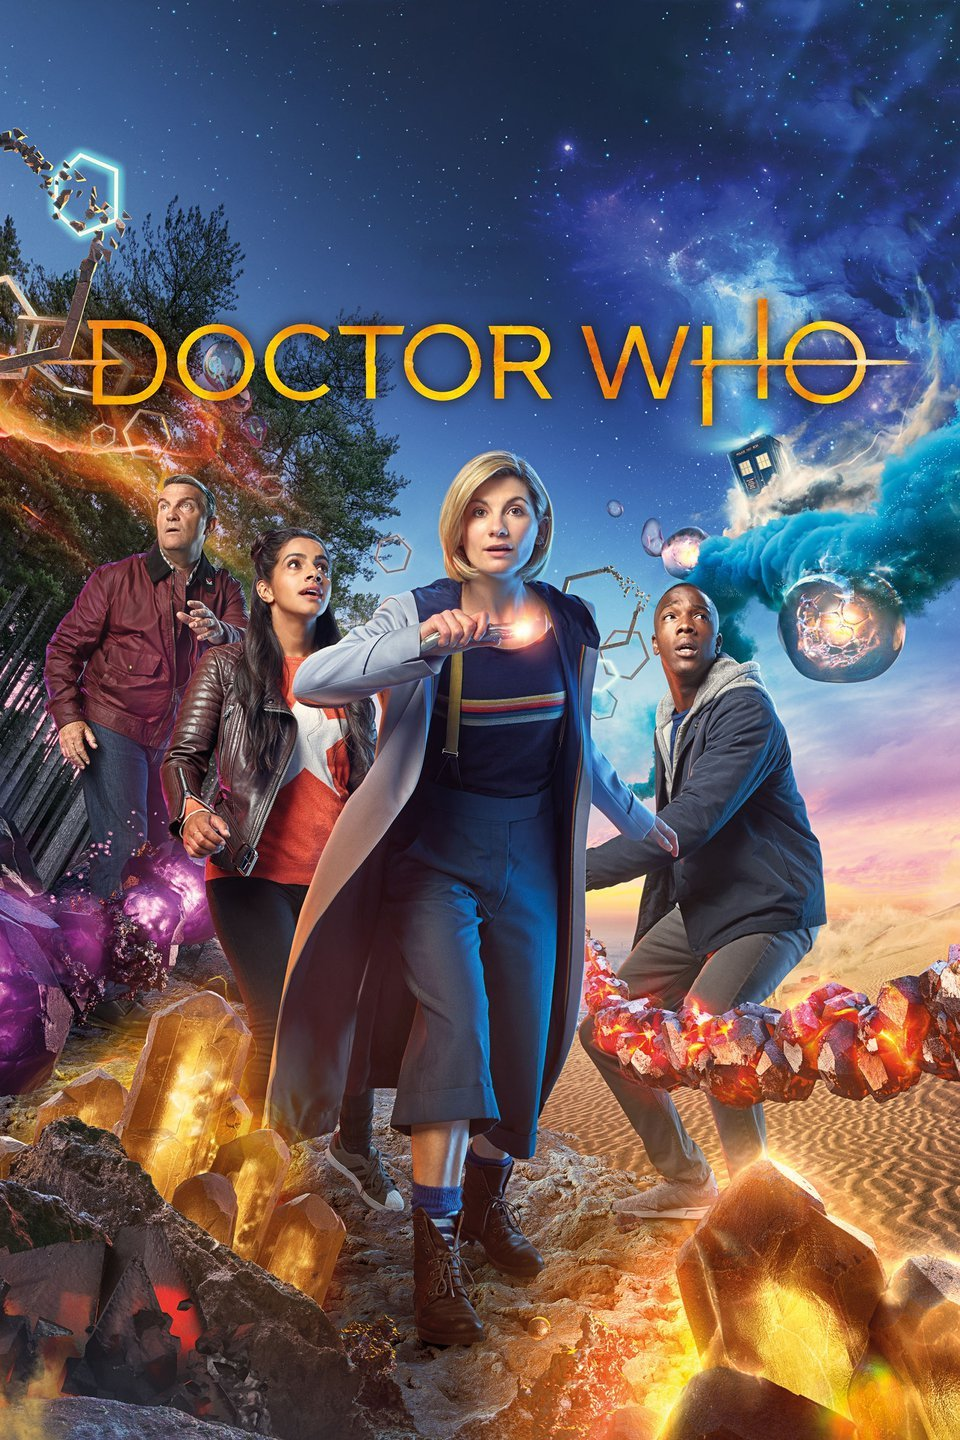 Discussing Doctor Who (2018)